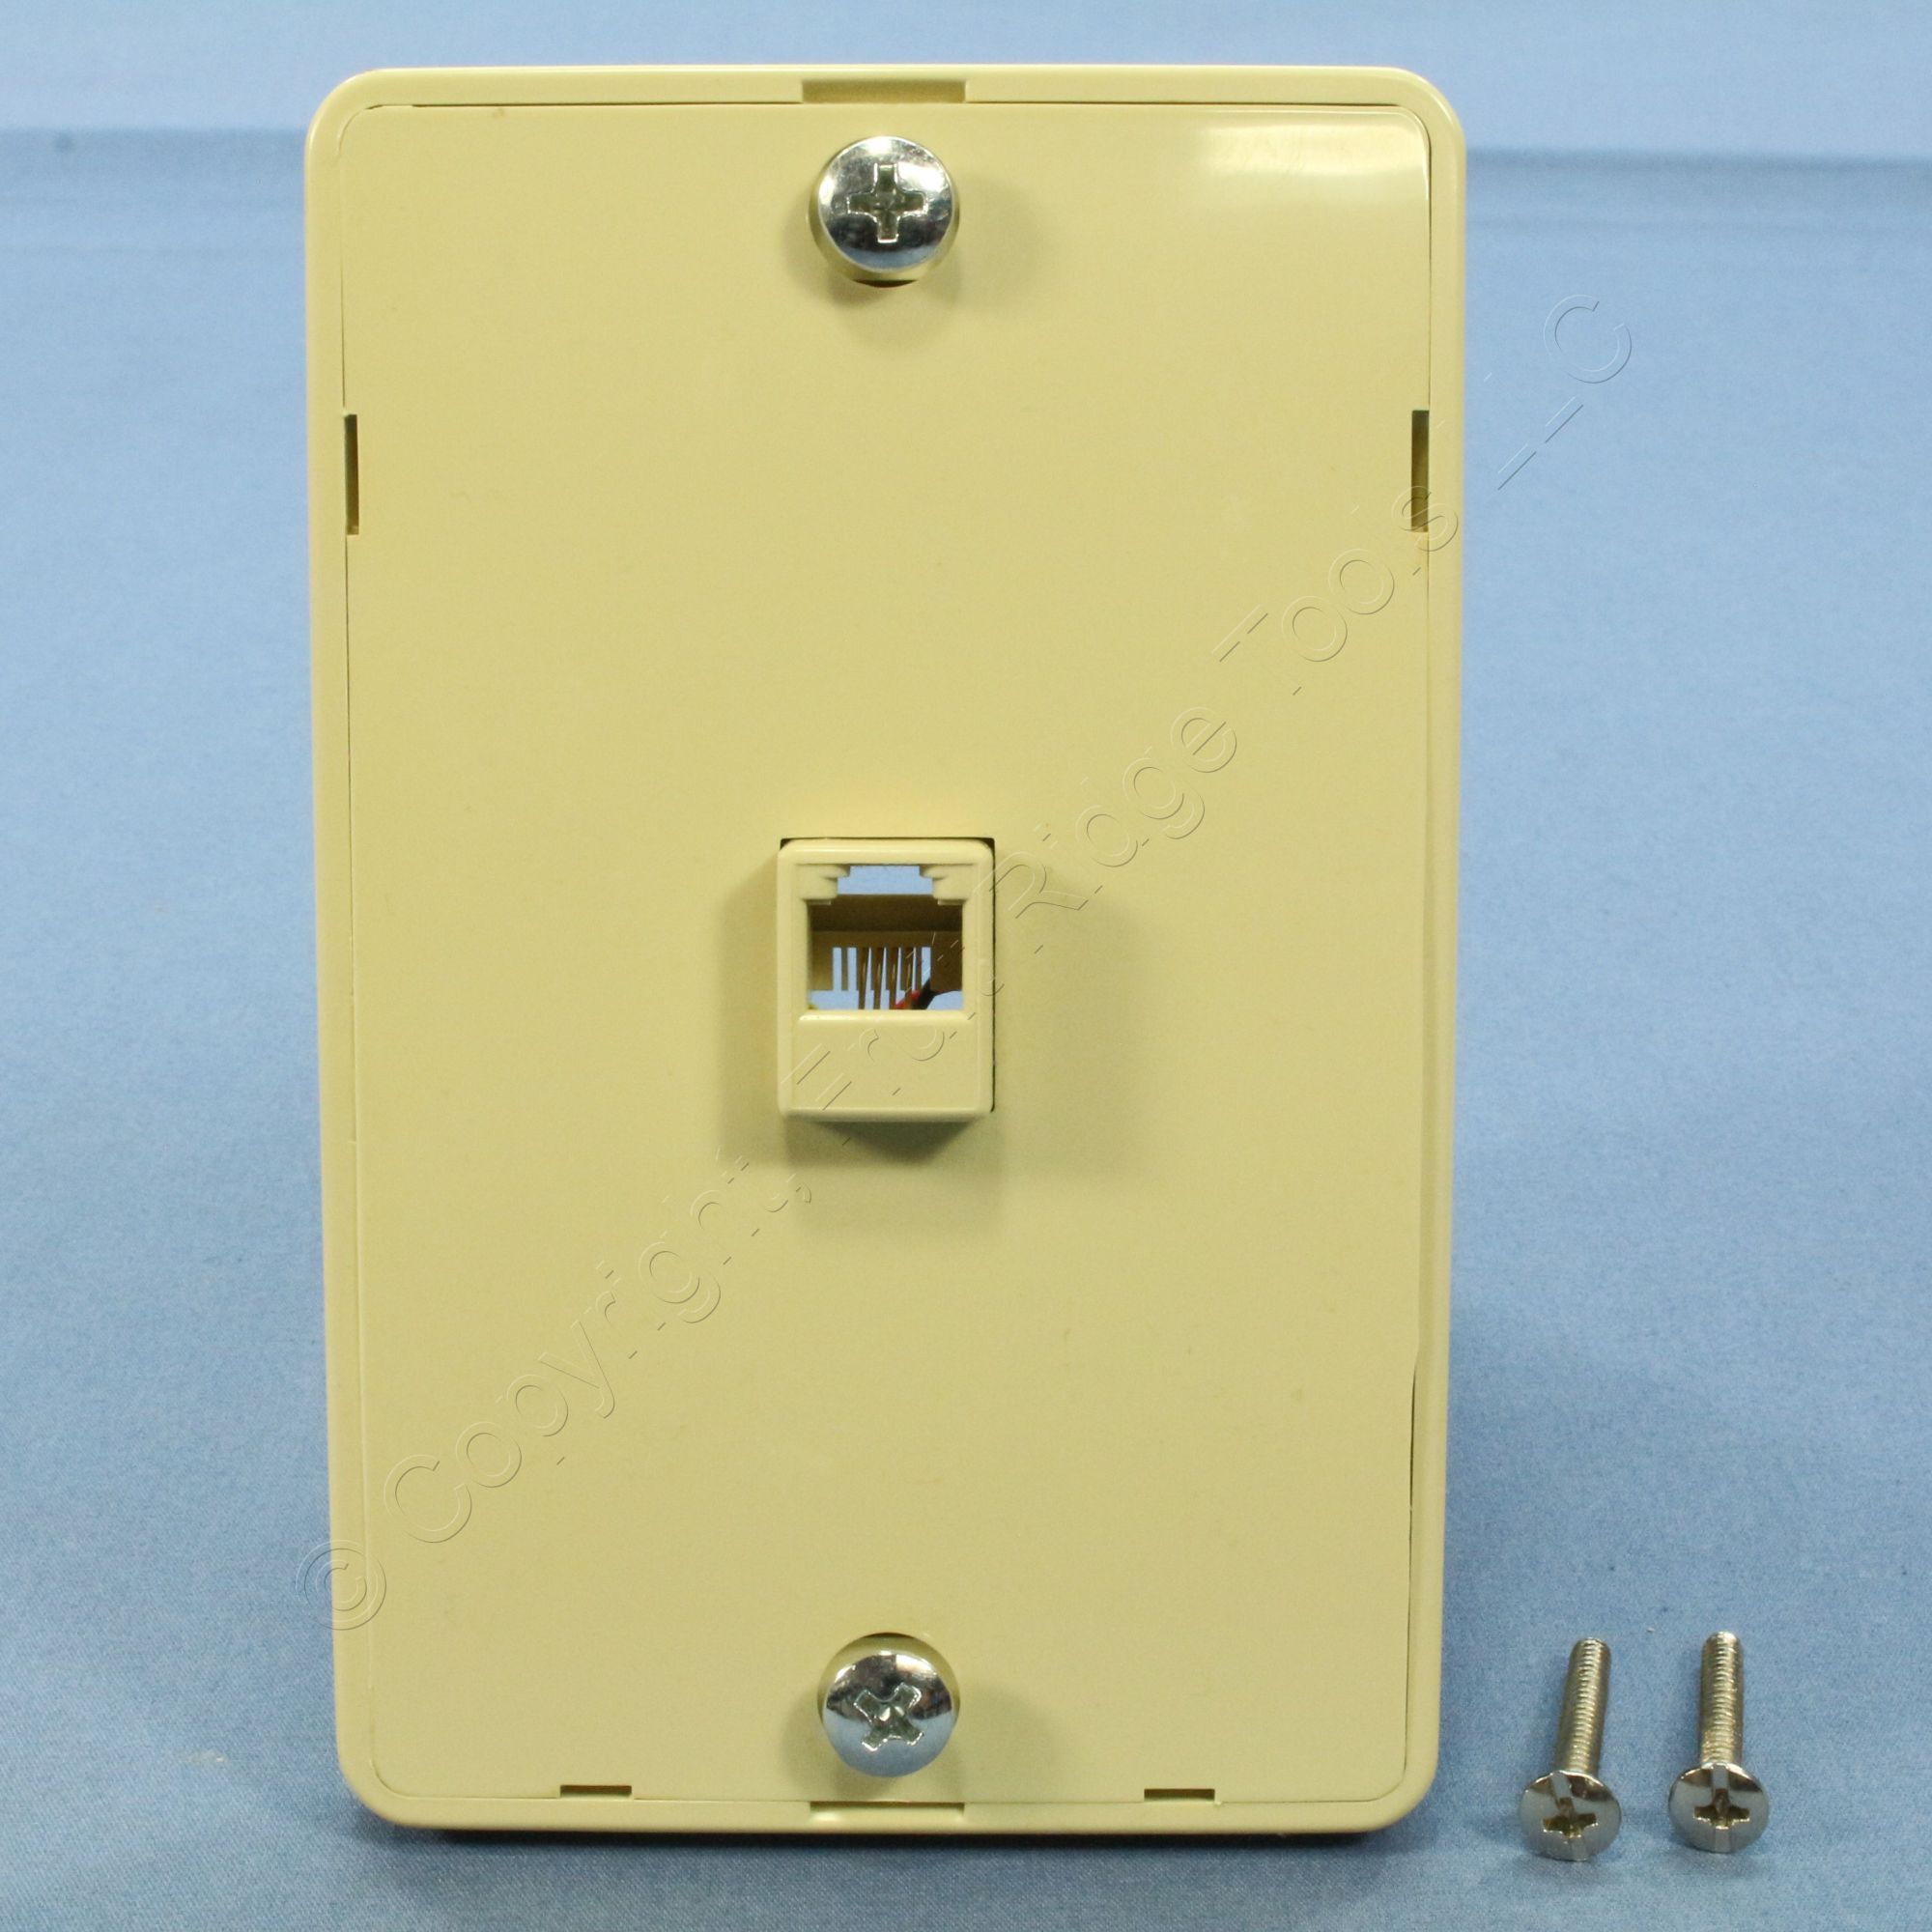 hight resolution of pass seymour ivory rj 11 wall mount phone jack 630a telephone outlet wmte14 i